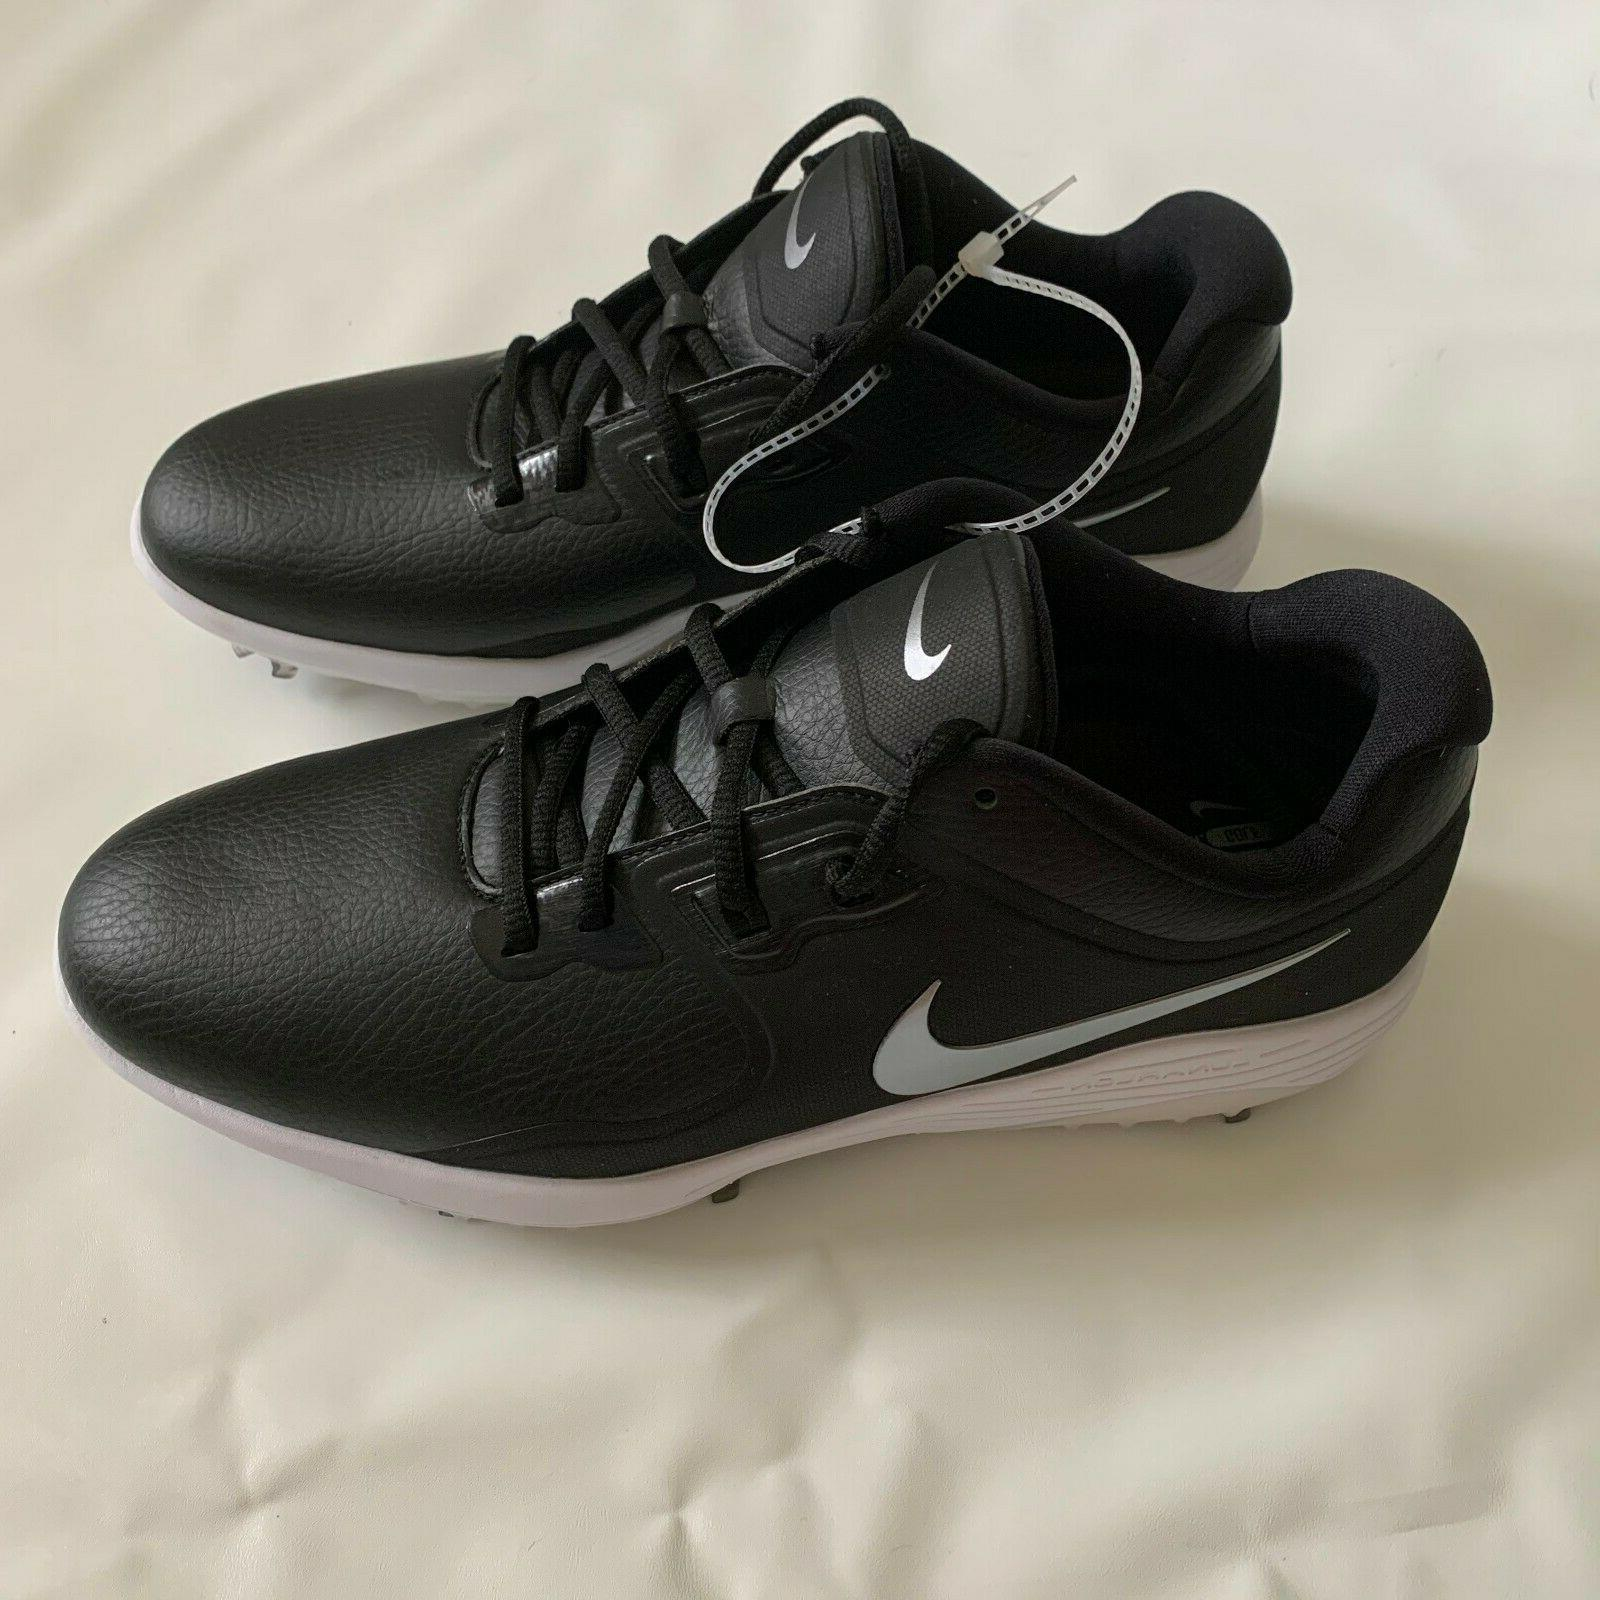 vapor pro golf shoes men s size